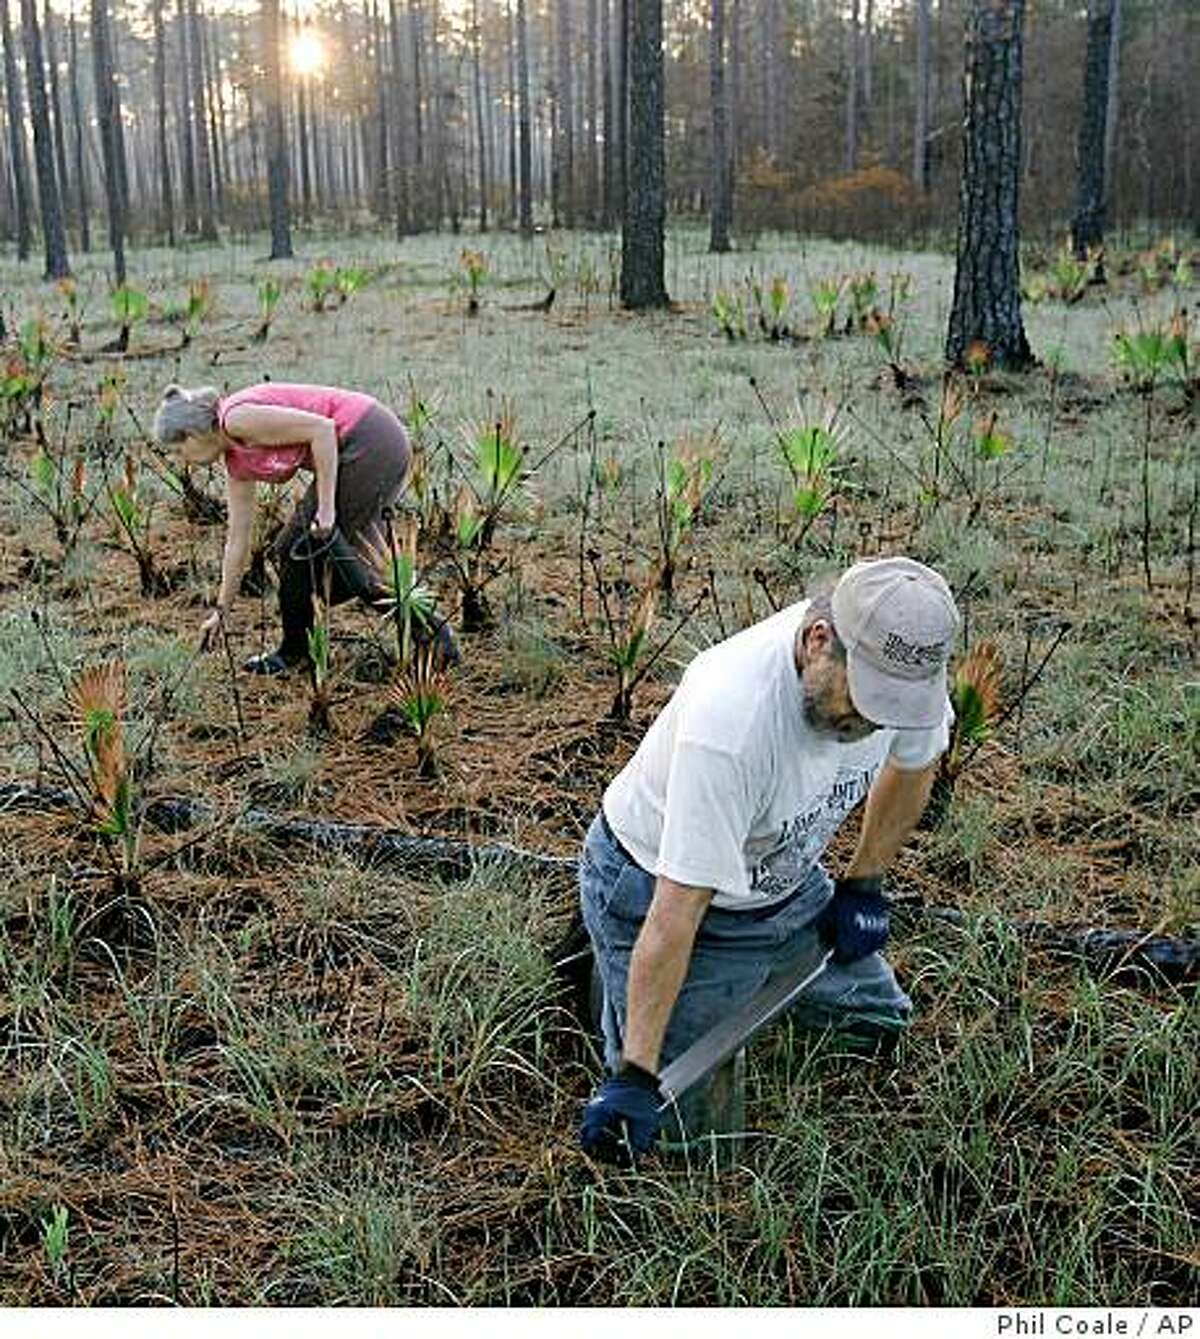 Gary Revell, right, and his wife Audrey harvest earth worms in the woods of the Apalachicola National Forest, Friday, May 15, 2009, in Samatra, Fla. Revell drives a